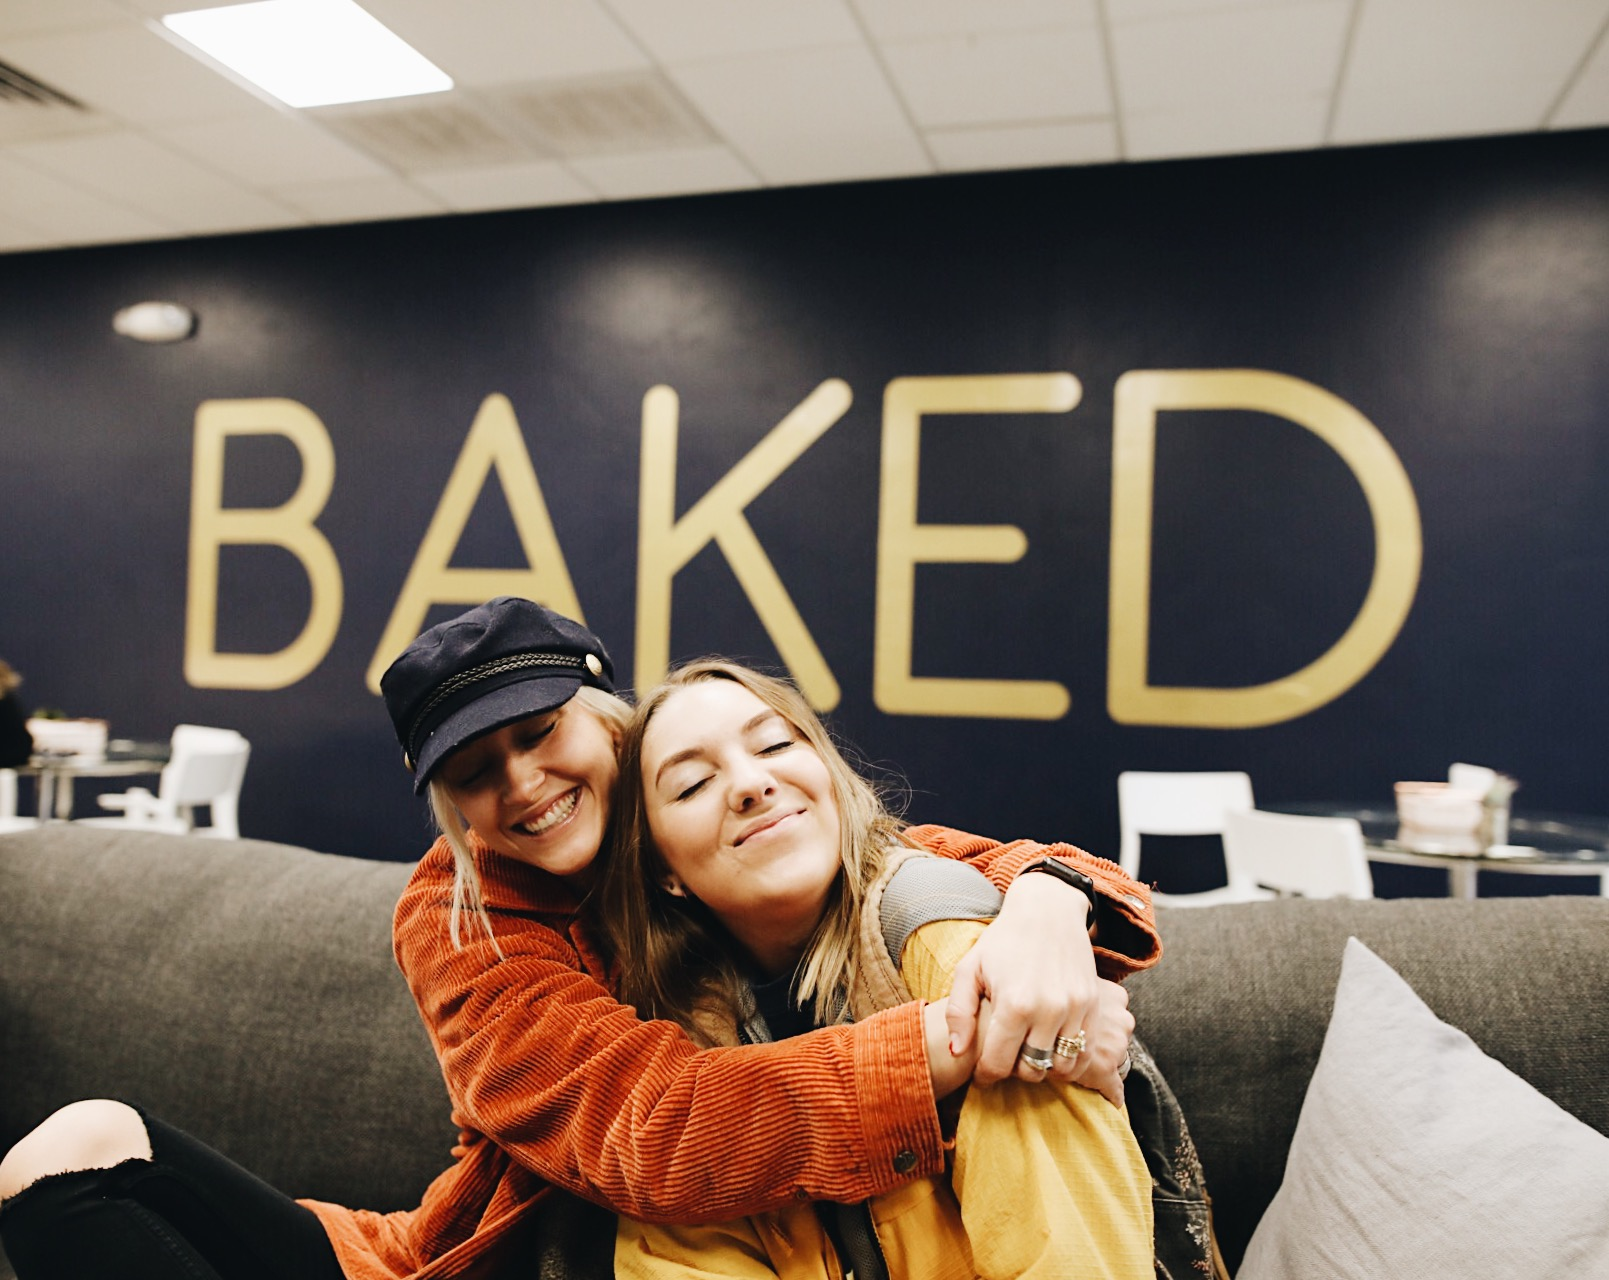 Baked is one of the newest restaurants in Rexburg.